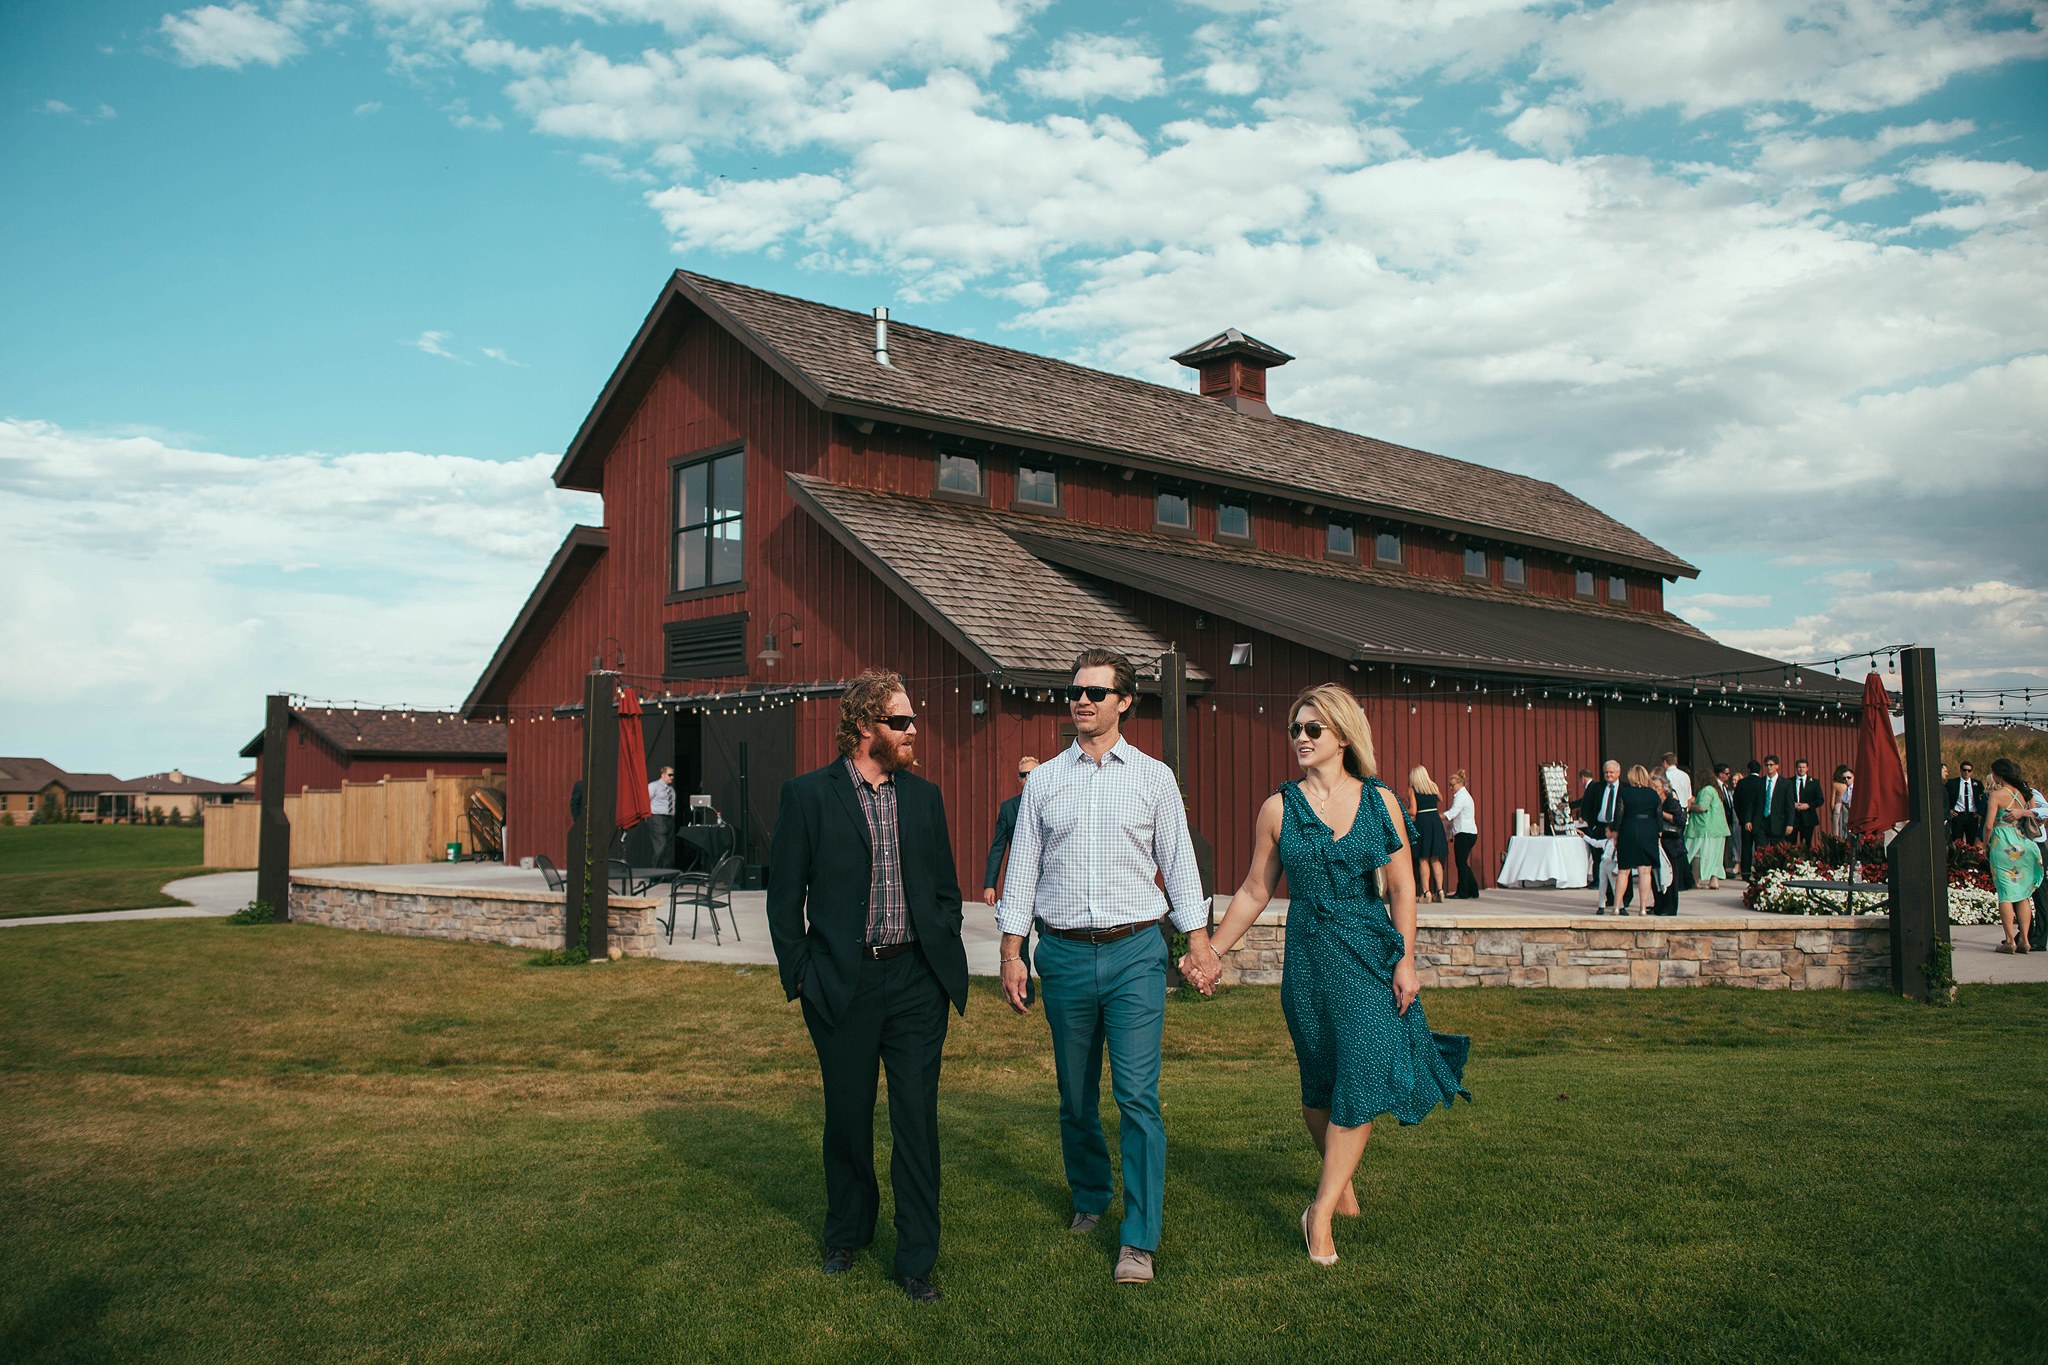 Cincinnati-Dayton-and-Traveling-Wedding-Photographer-Big-Red-Barn-Highland-Meadows-Golf-Course-CO-93